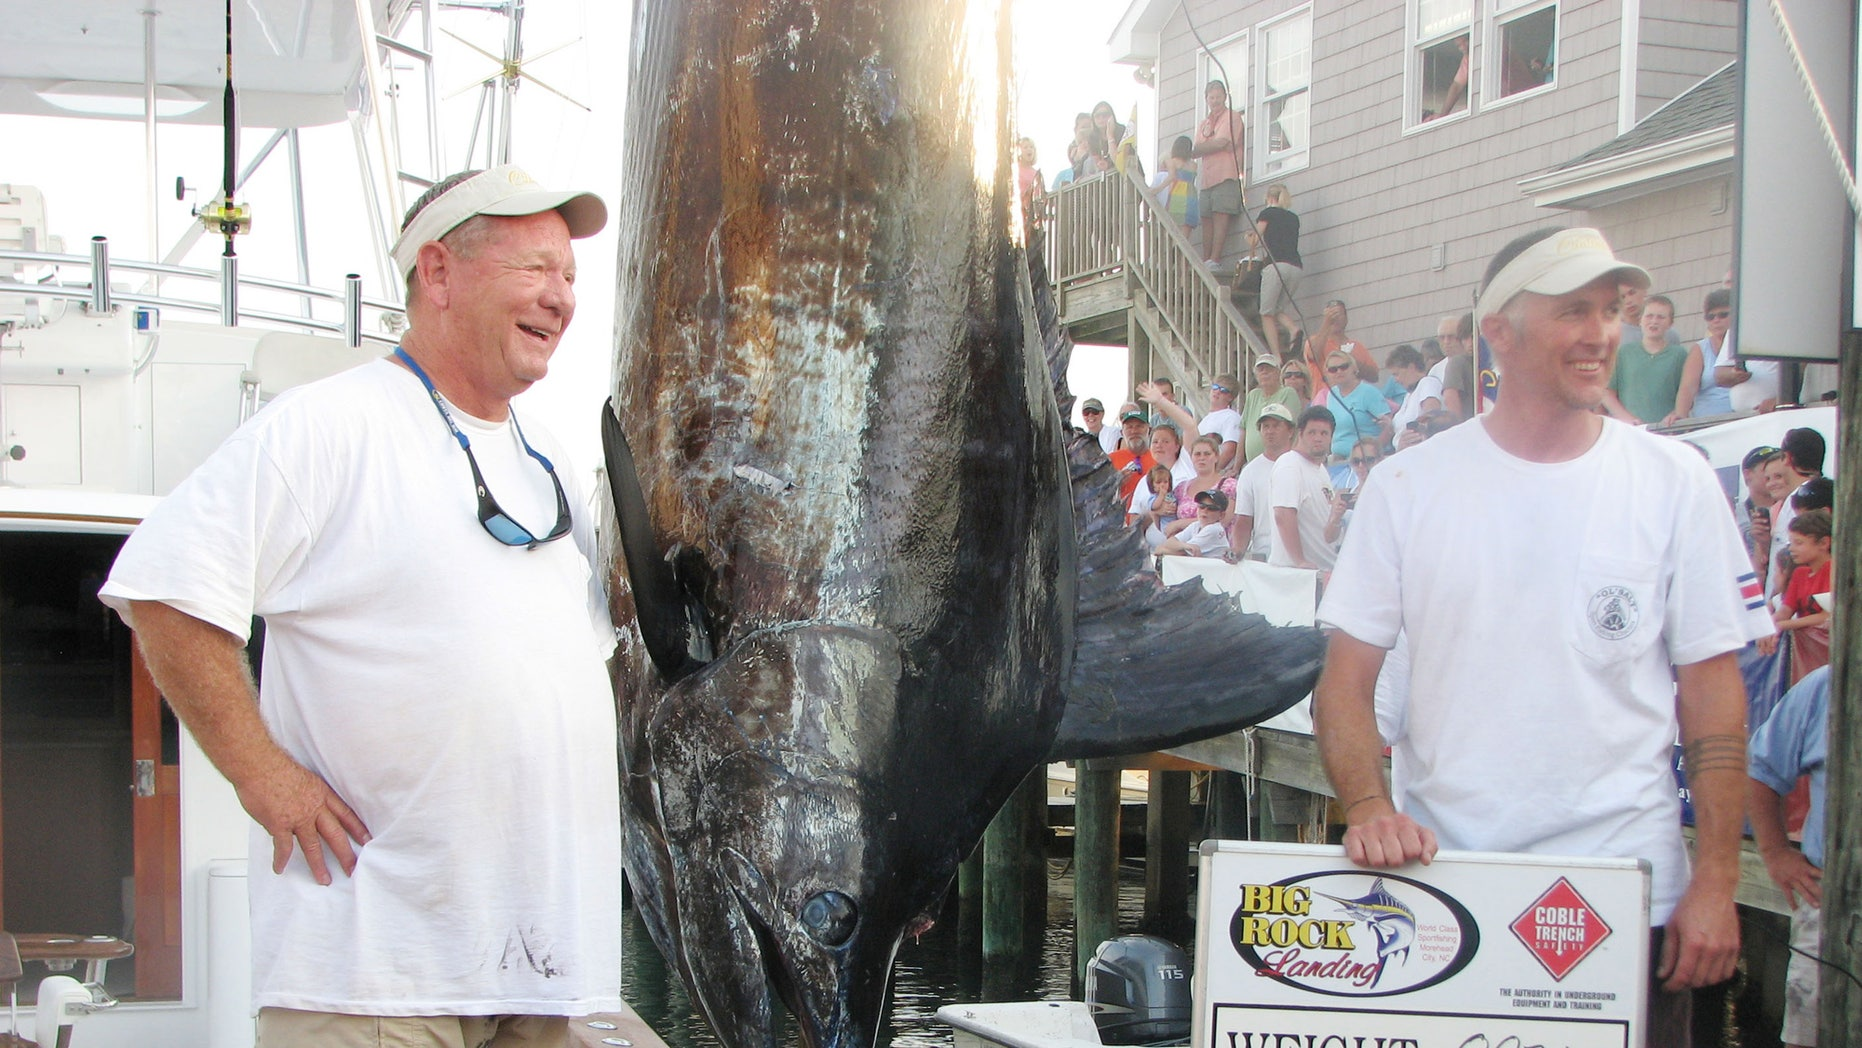 June 14, 2012: Citation angler Andy Thomossan, left, and Eric Holmes stand next to their 883-pound blue marlin, which broke the record for the biggest blue marlin in the 52-year history of the Big Rock Blue Marlin Tournament in Morehead City, N.C.